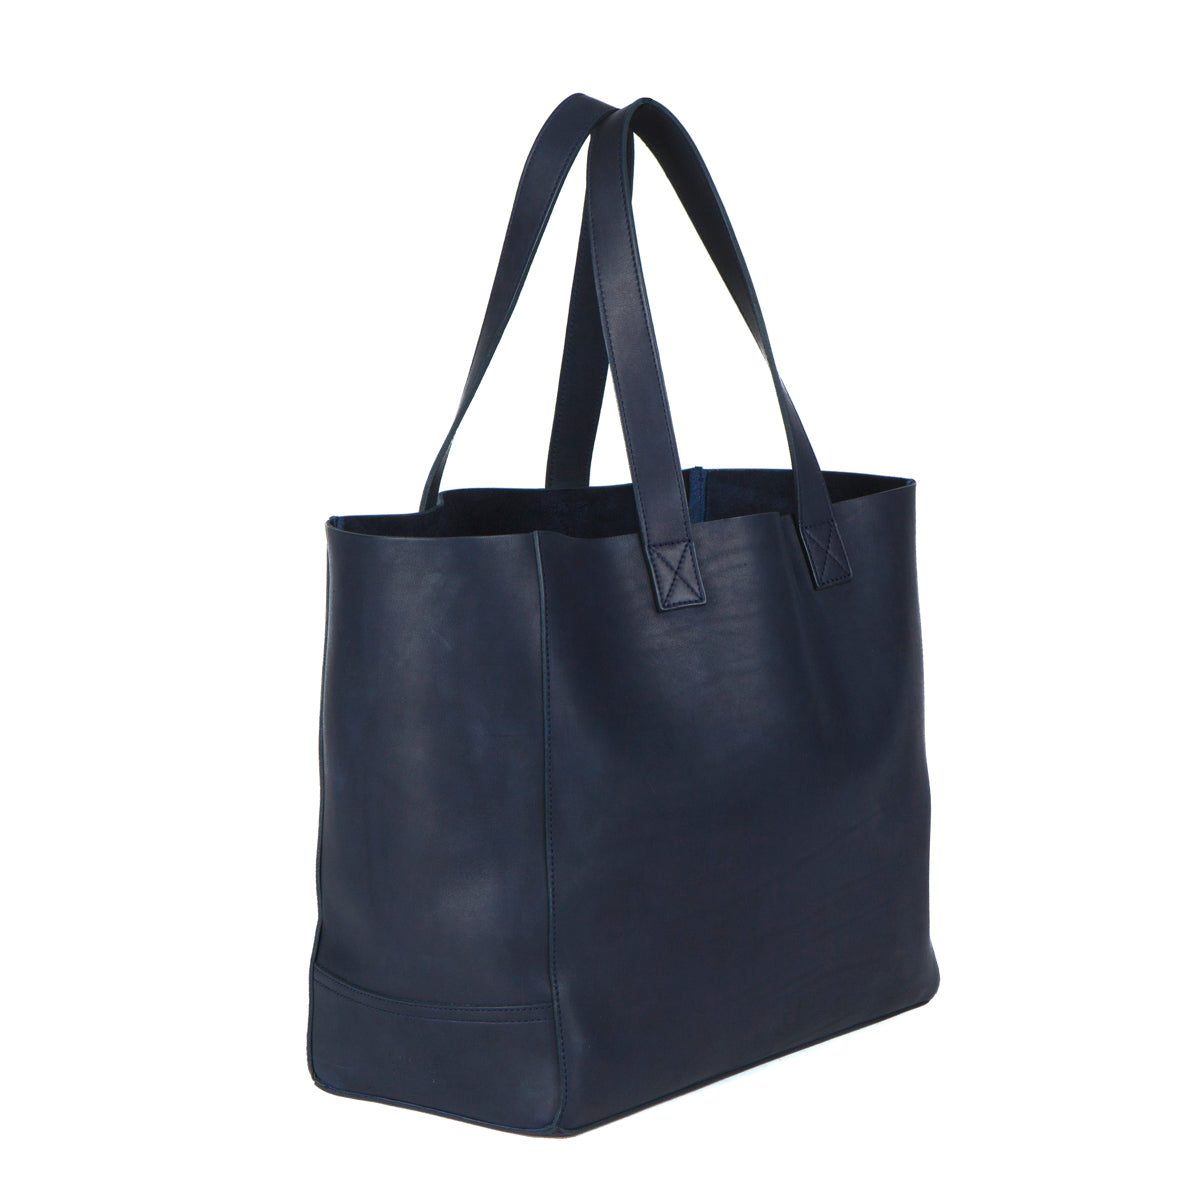 Moore & Giles Massie Tote